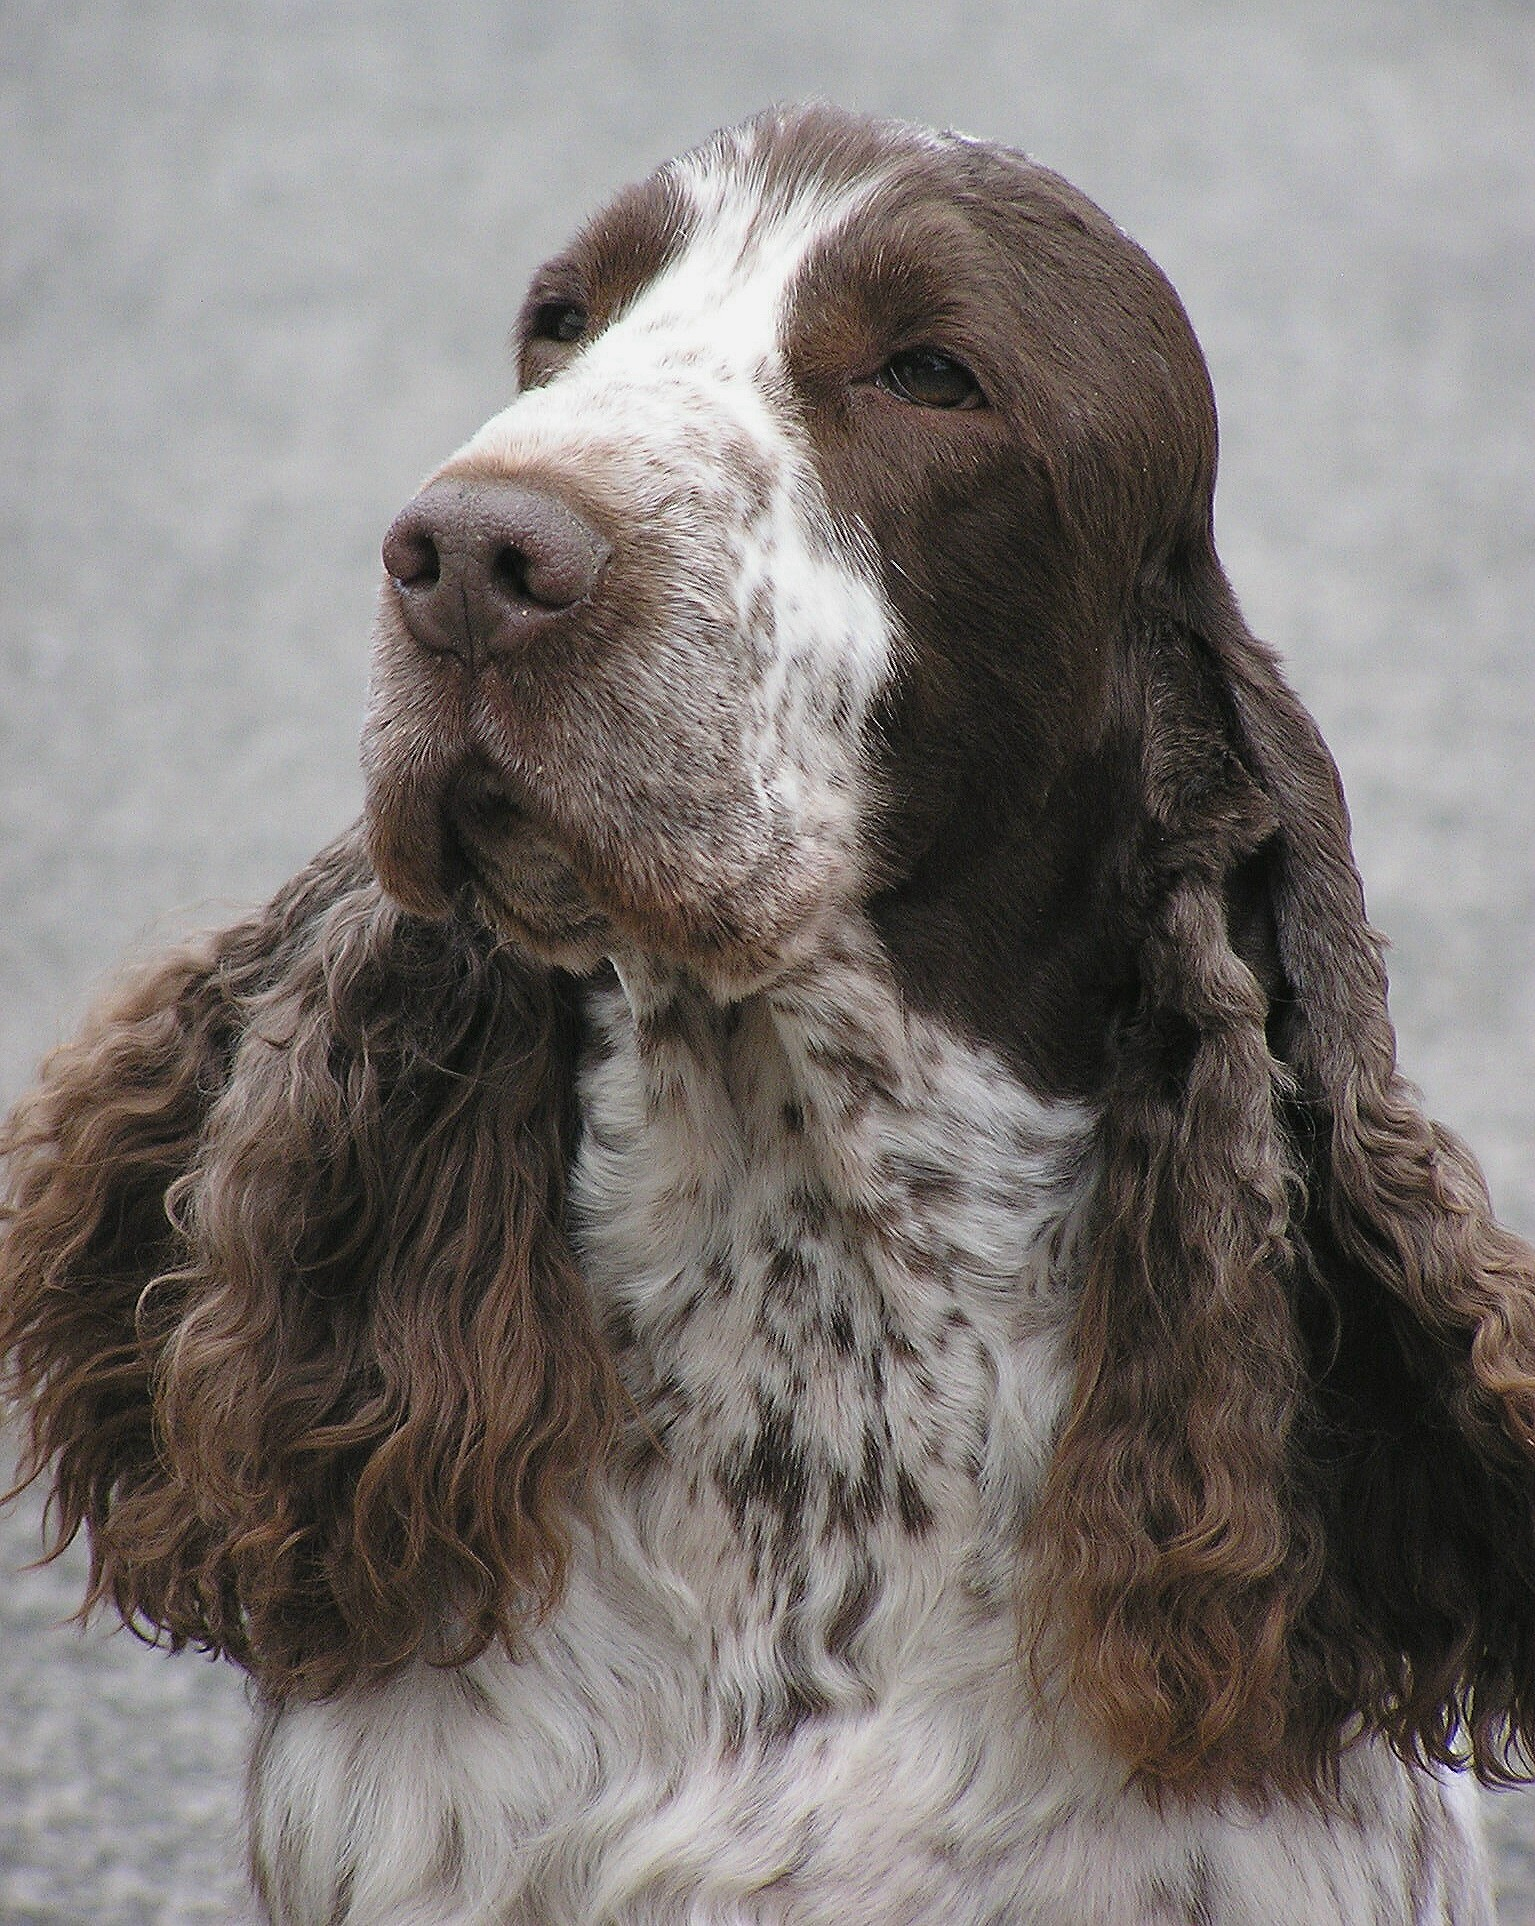 English Cocker Spaniel schaut in die Kamera